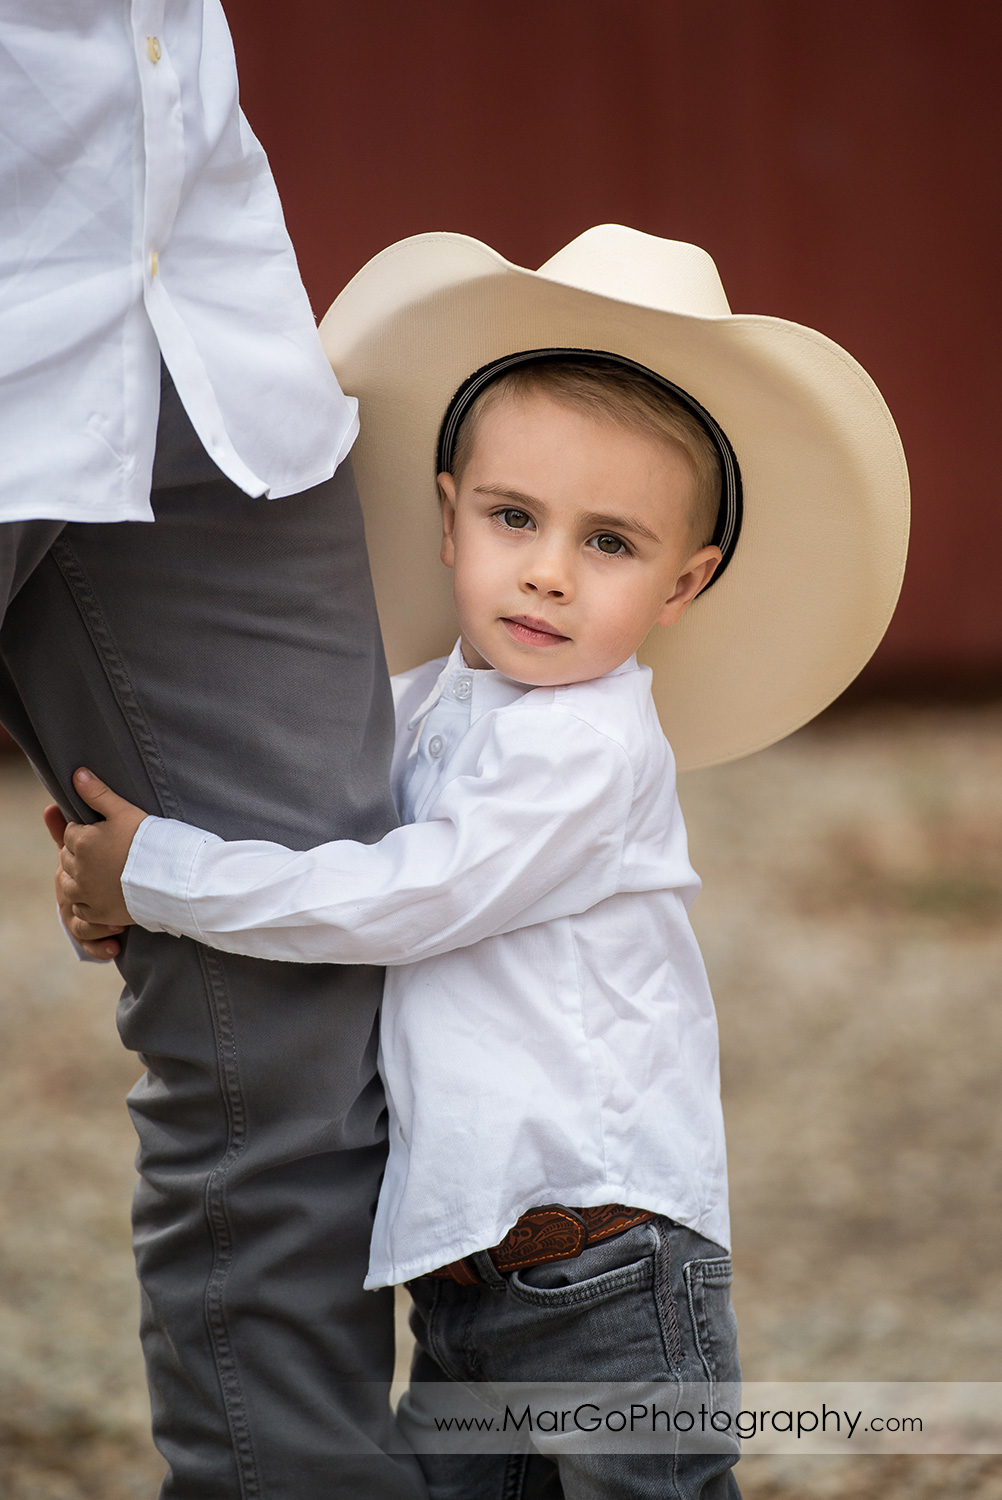 portrait of little boy in white shirt, gray jeans and cowboy hat holding dad's leg in Shinn Historical Park and Arboretum in Fremont